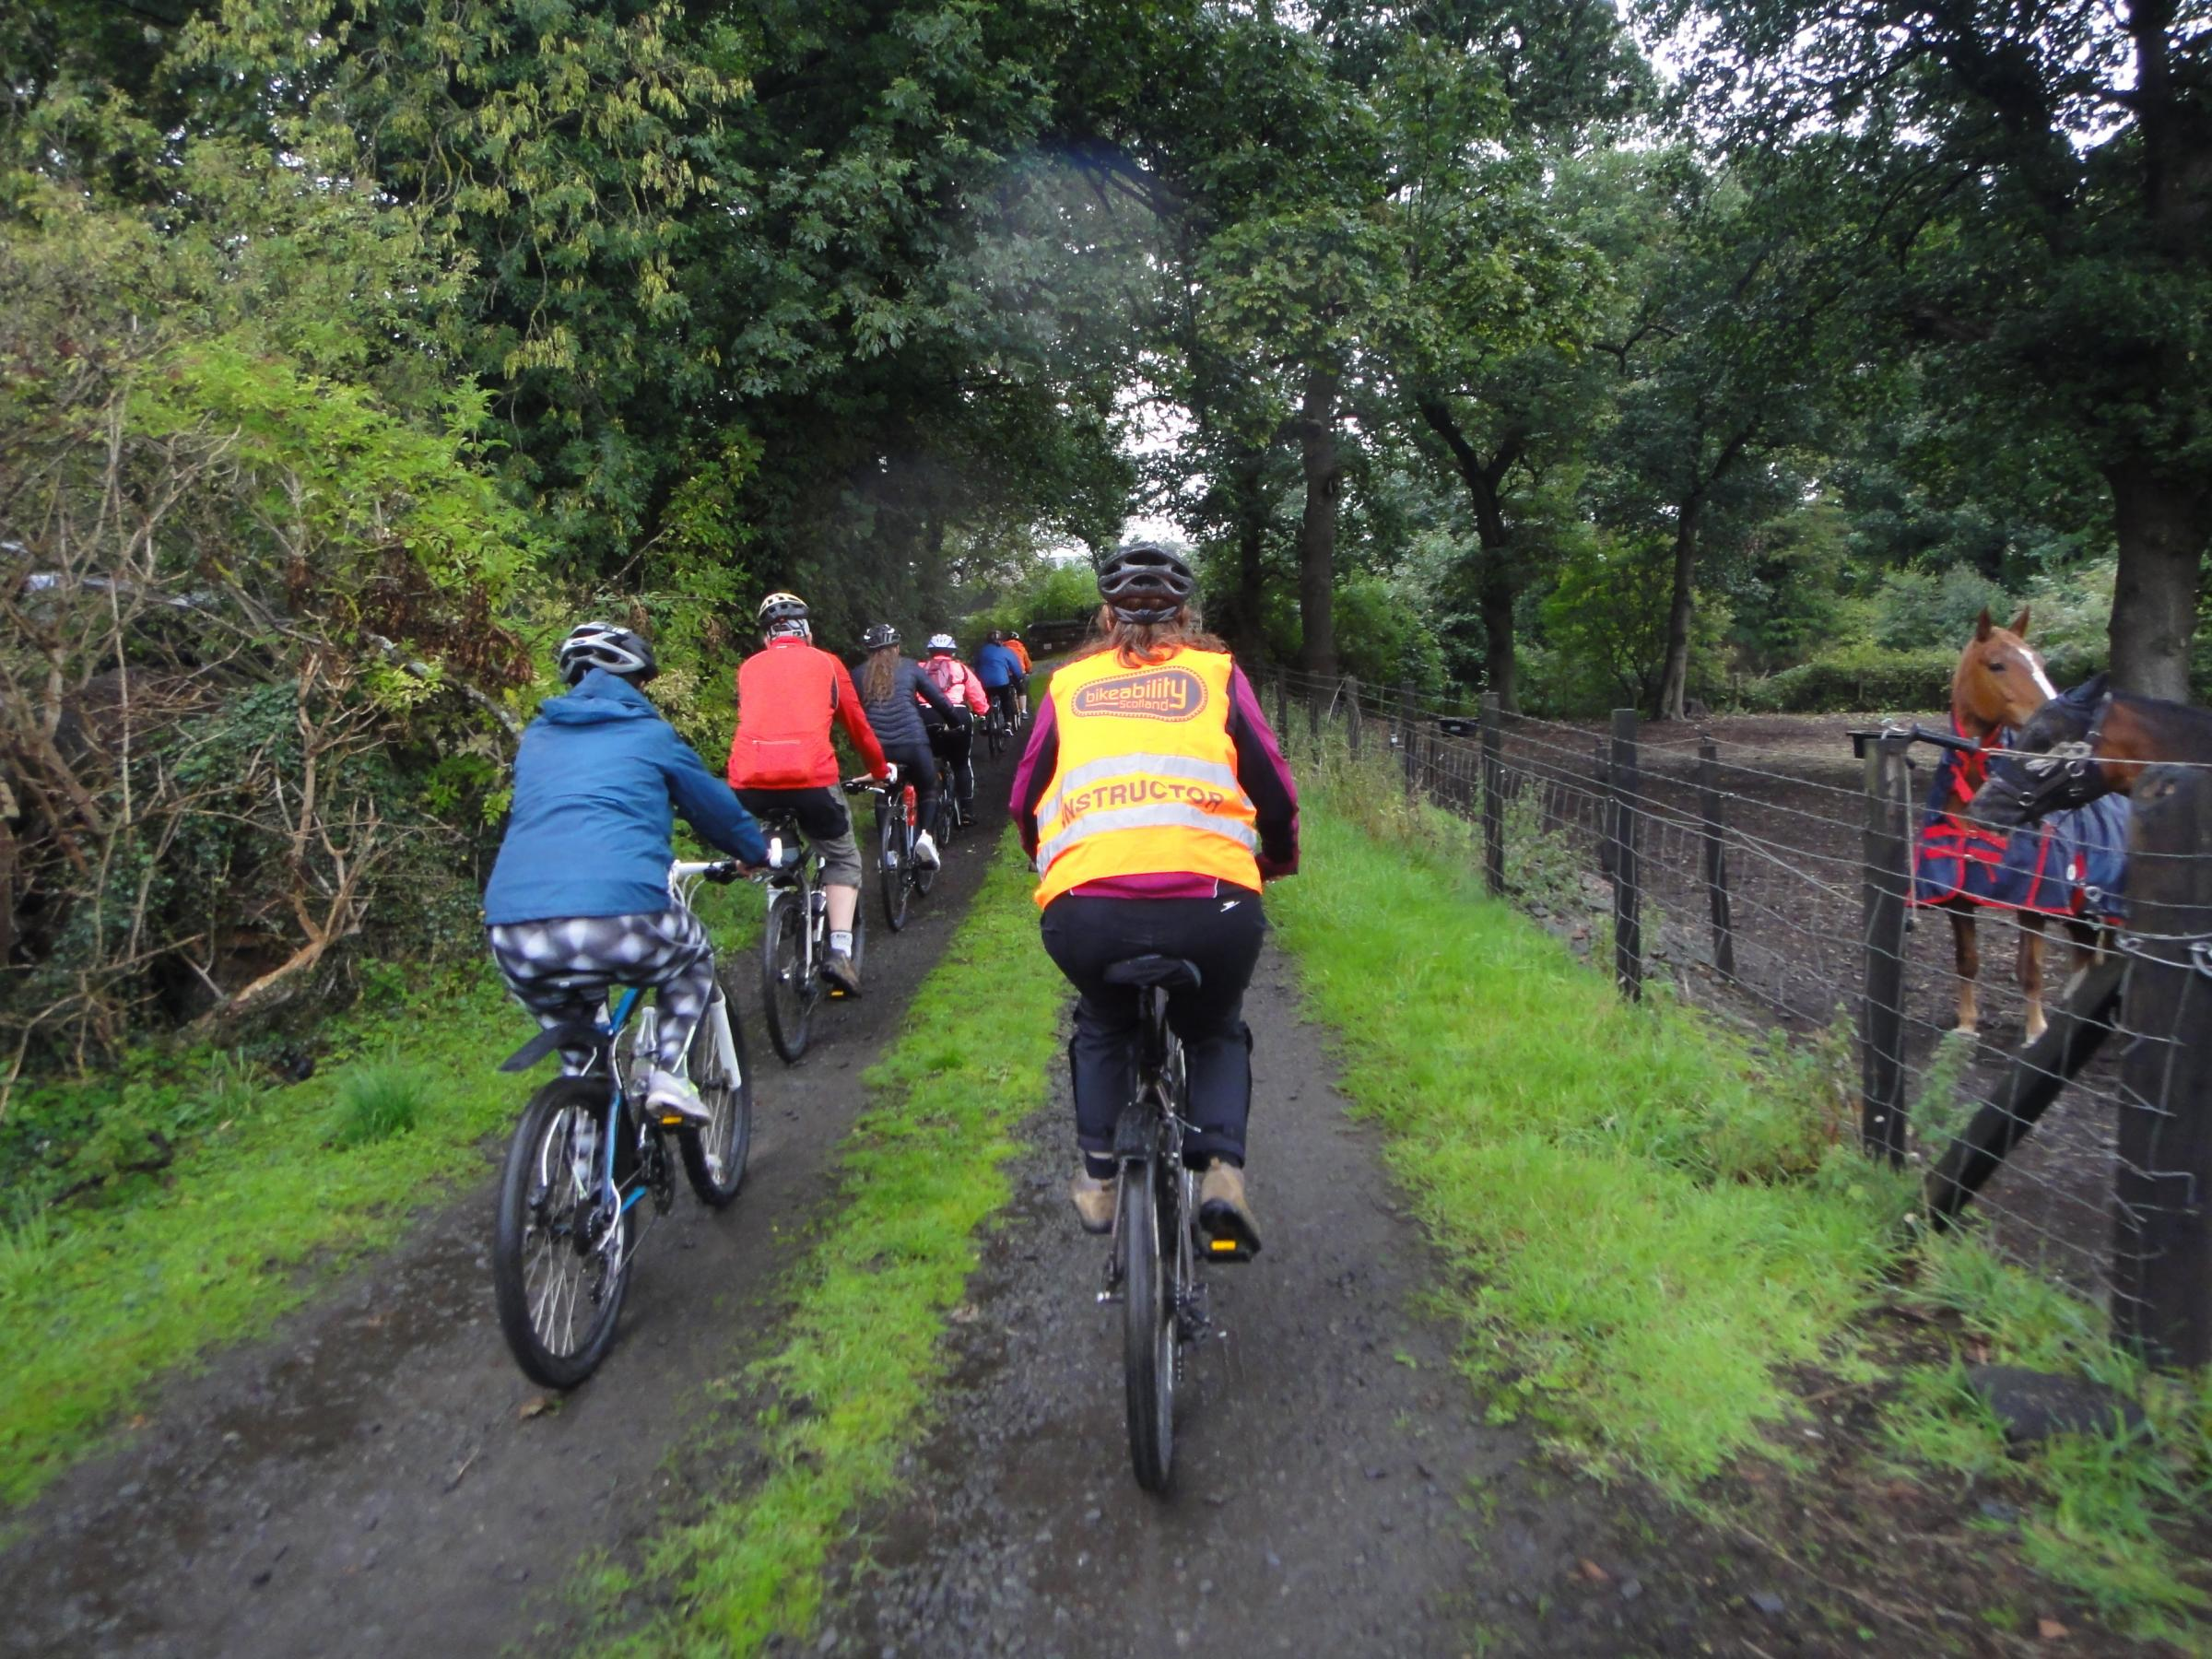 Members of the Clackmannan Development Trust took on a cycling session